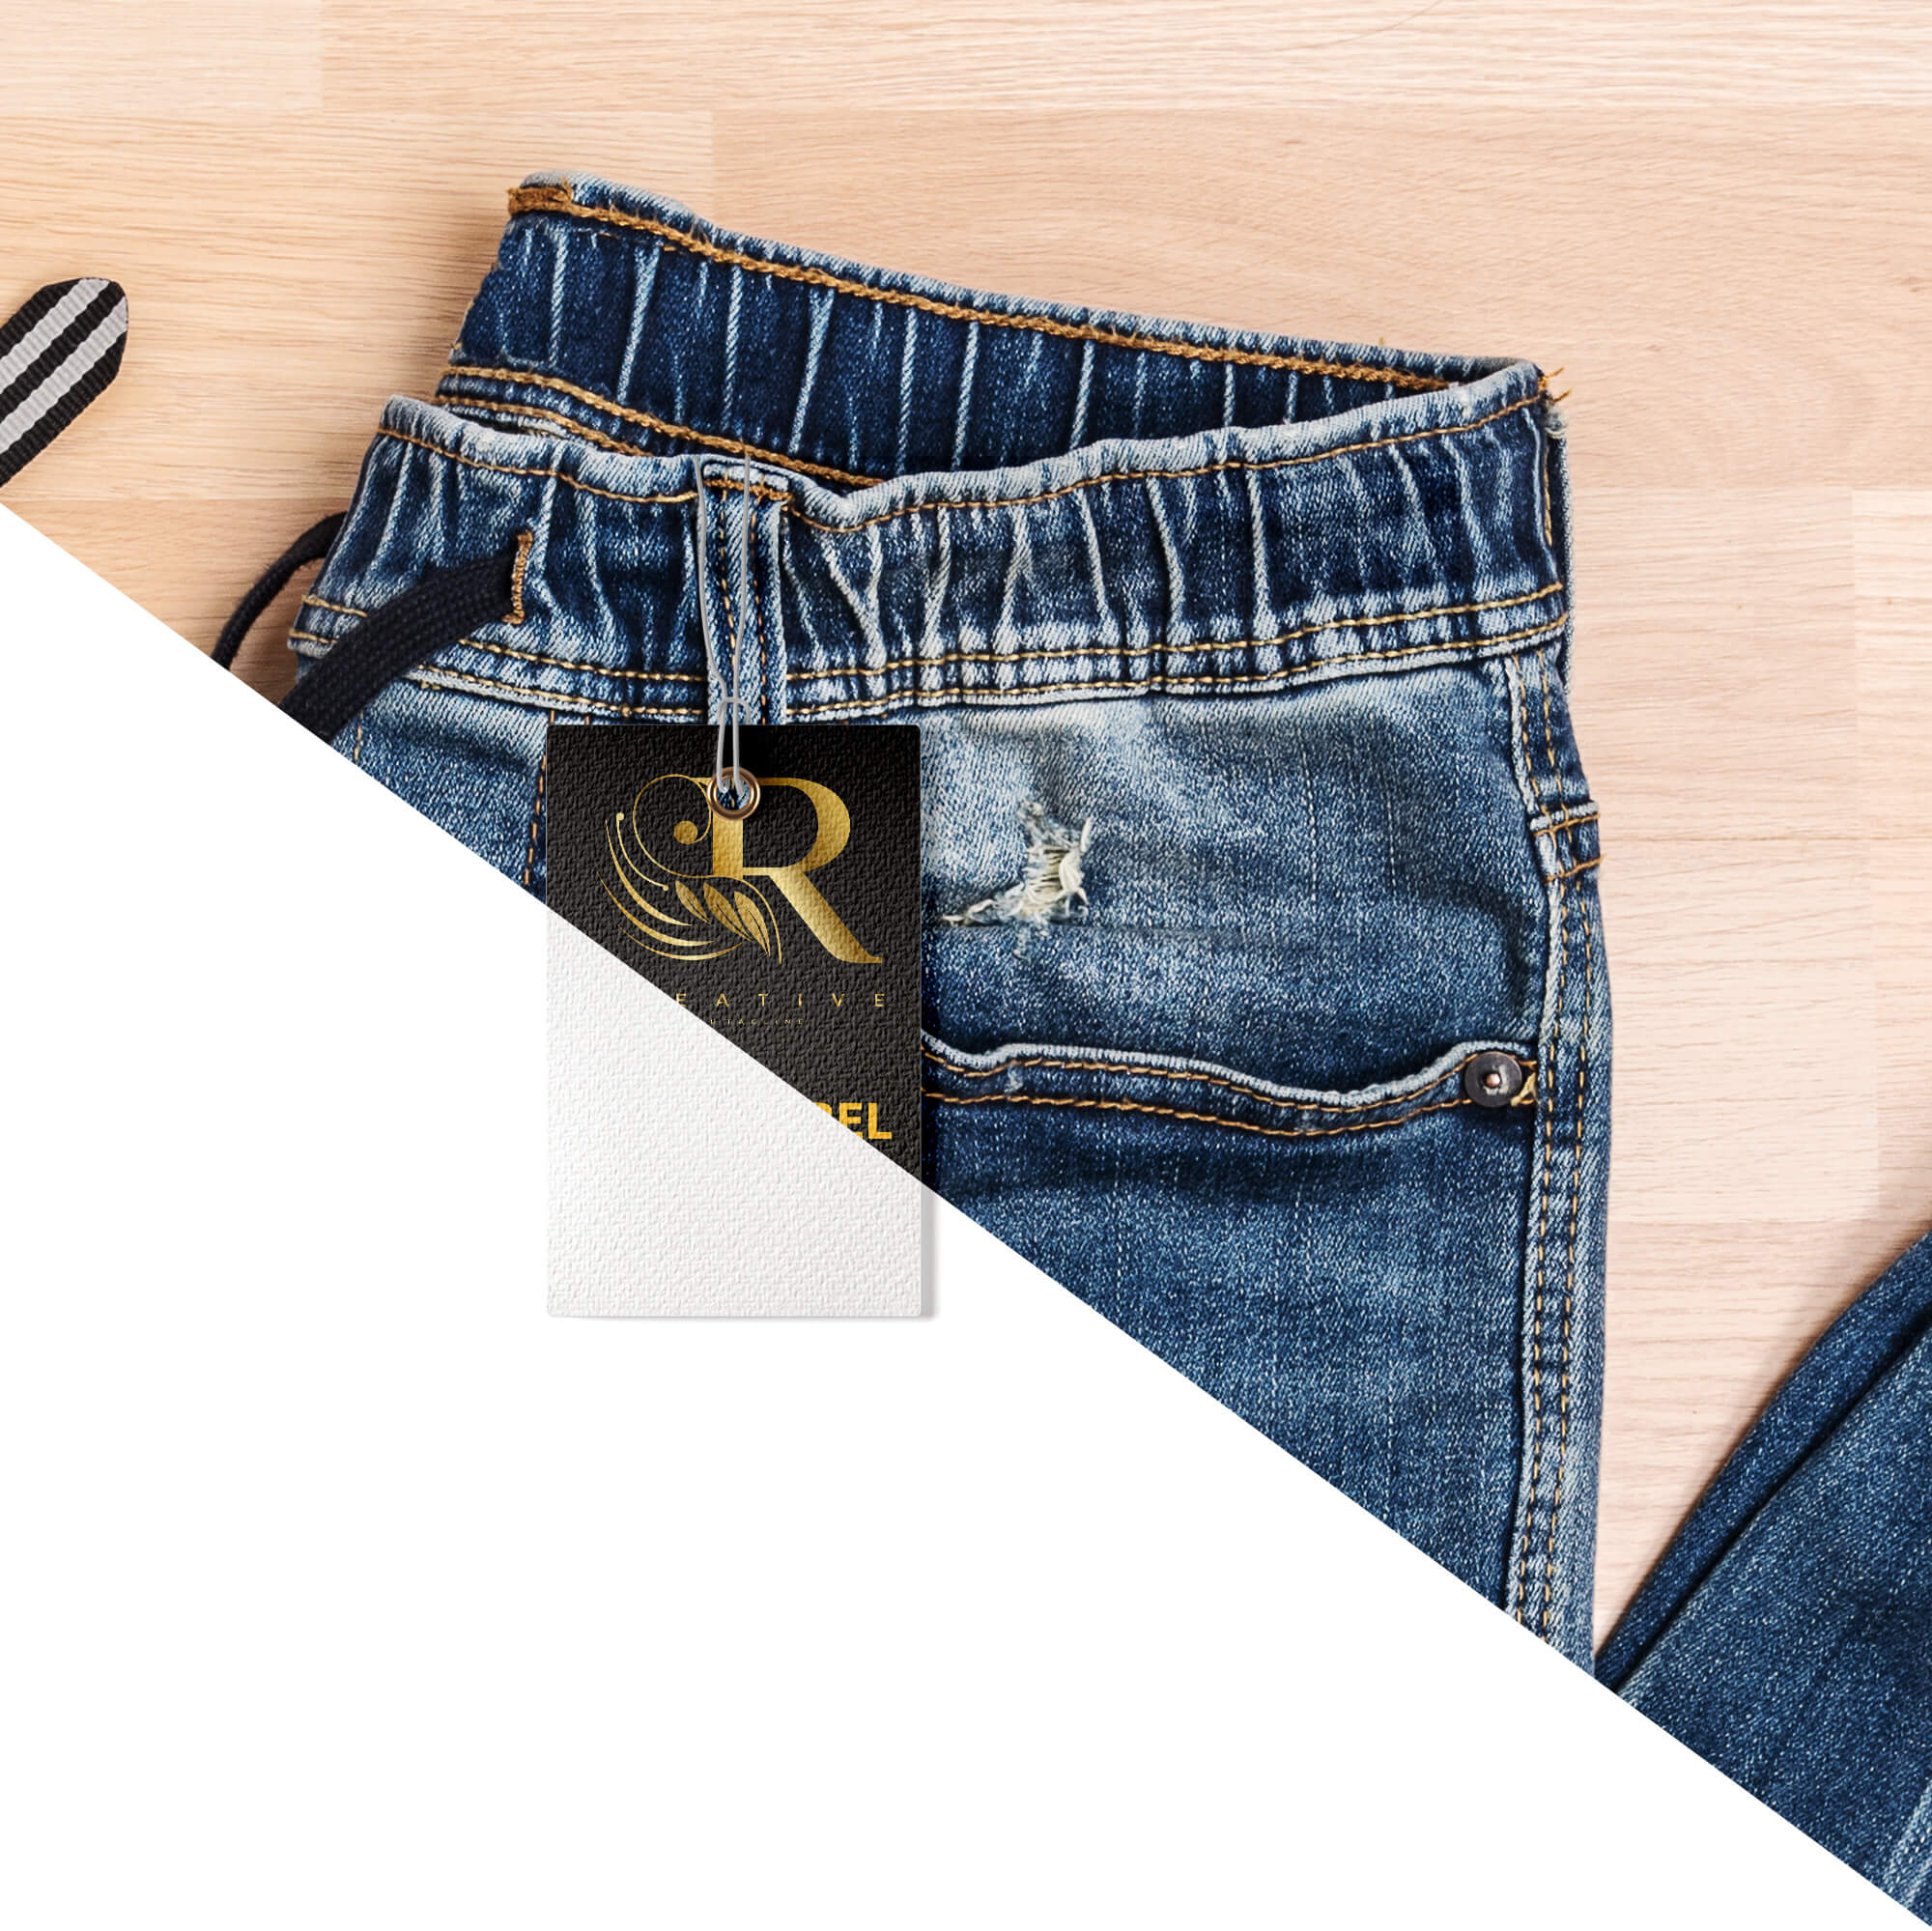 Editable Free Jeans Label Mockup PSD Template